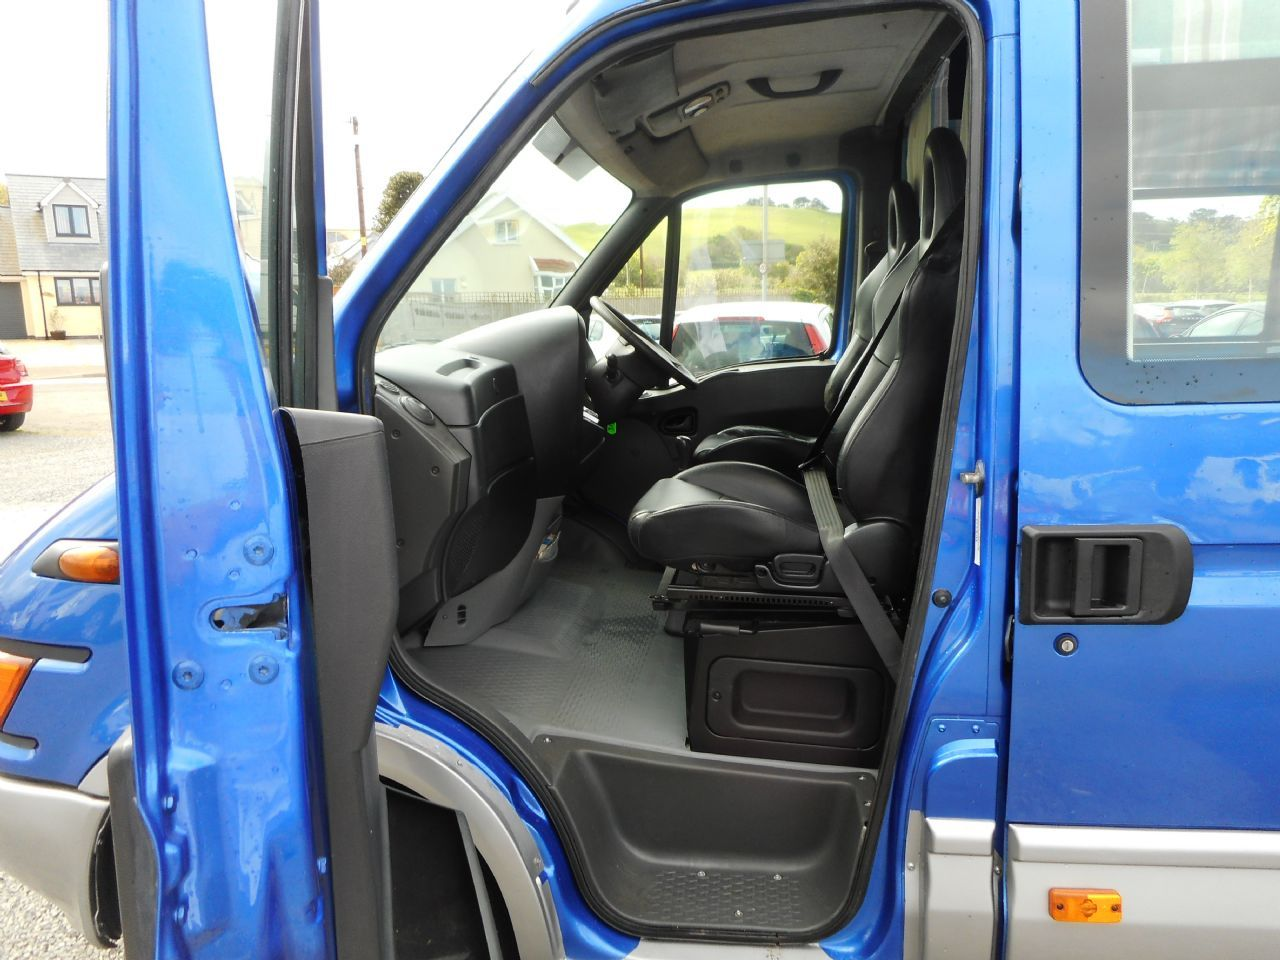 IVECO DAILY 35S12D W/B 3450 (2004) - Picture 7